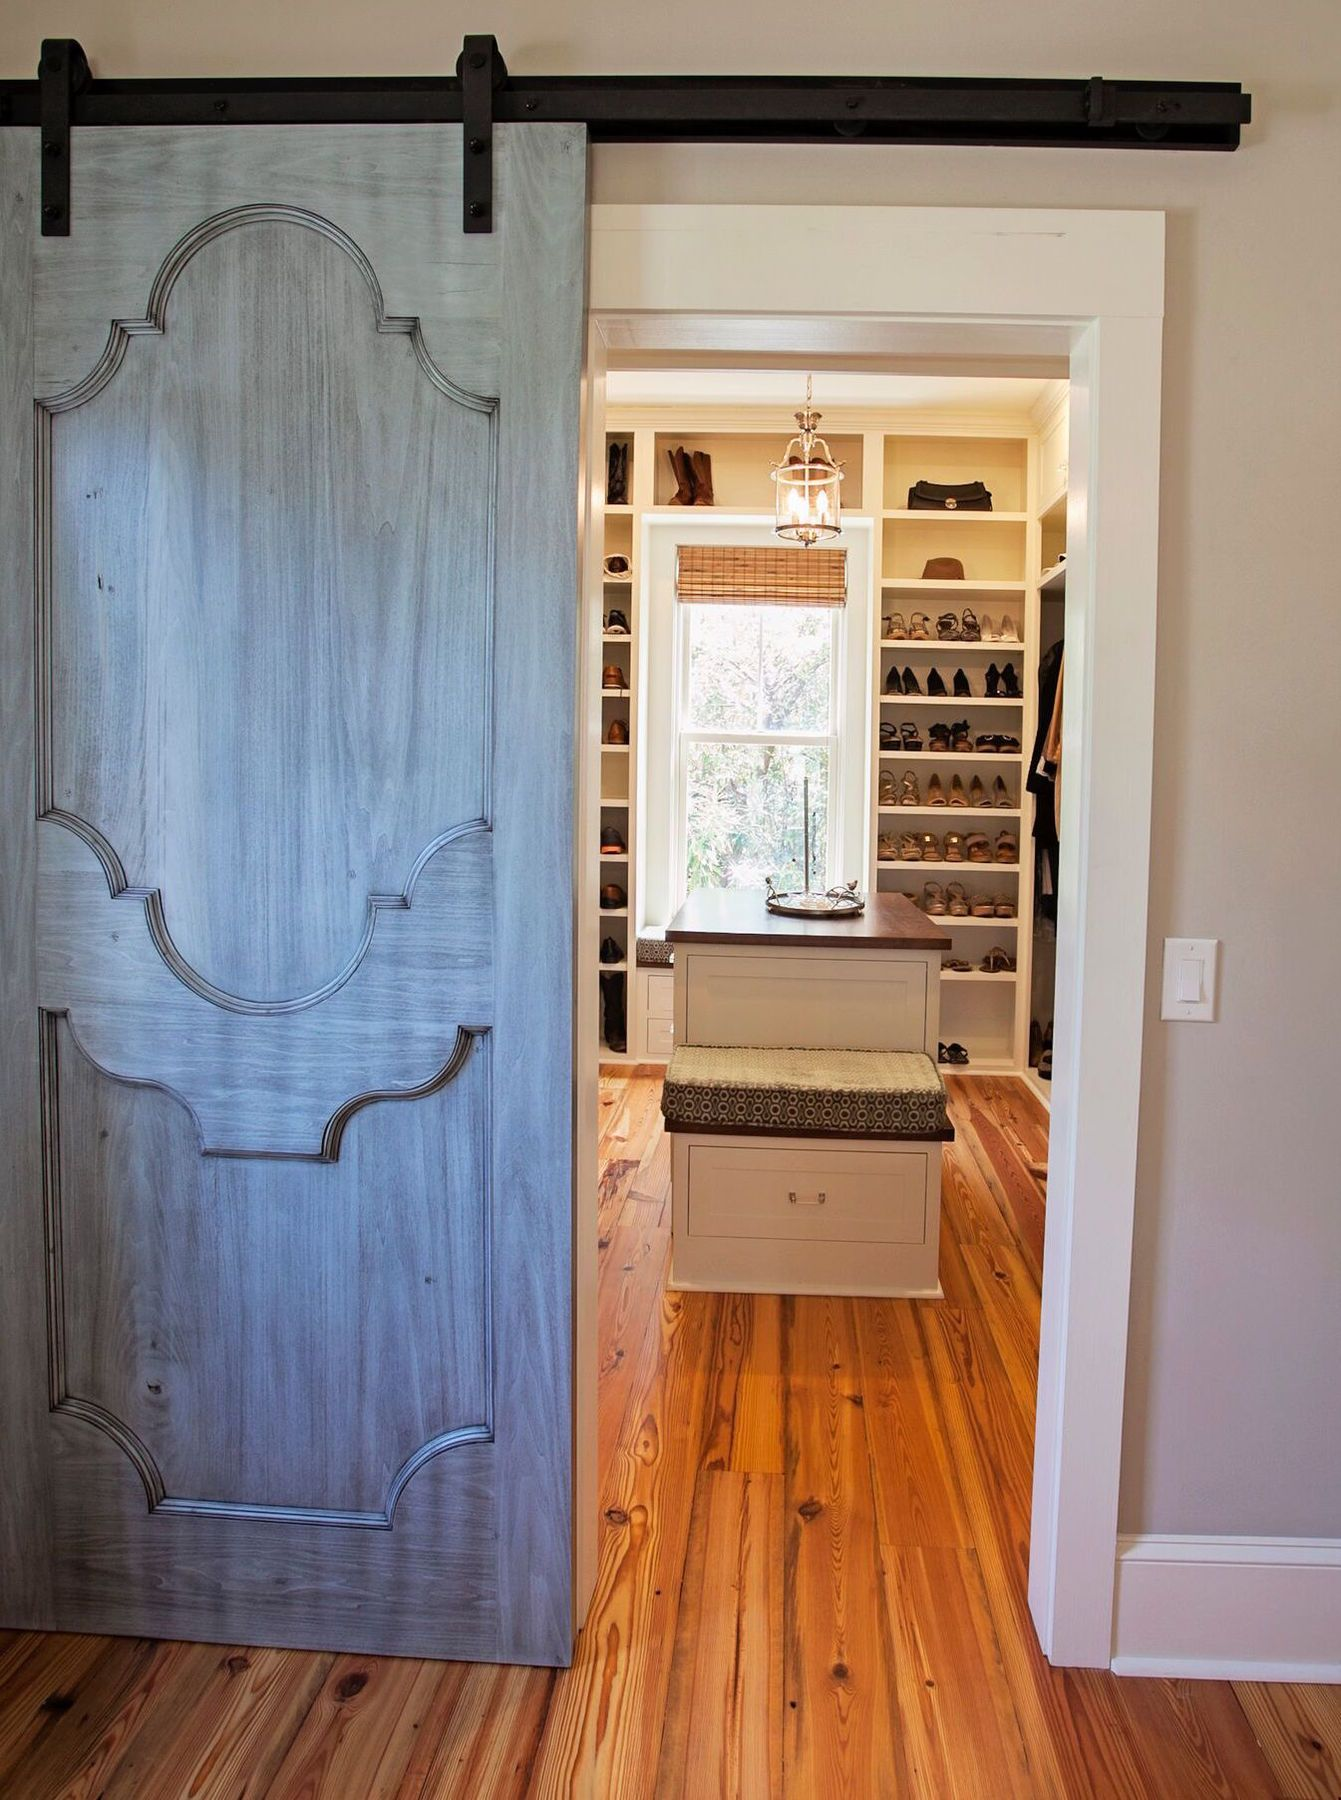 A barn door with an aged blue patina separates the master bedroom from the swanky closet